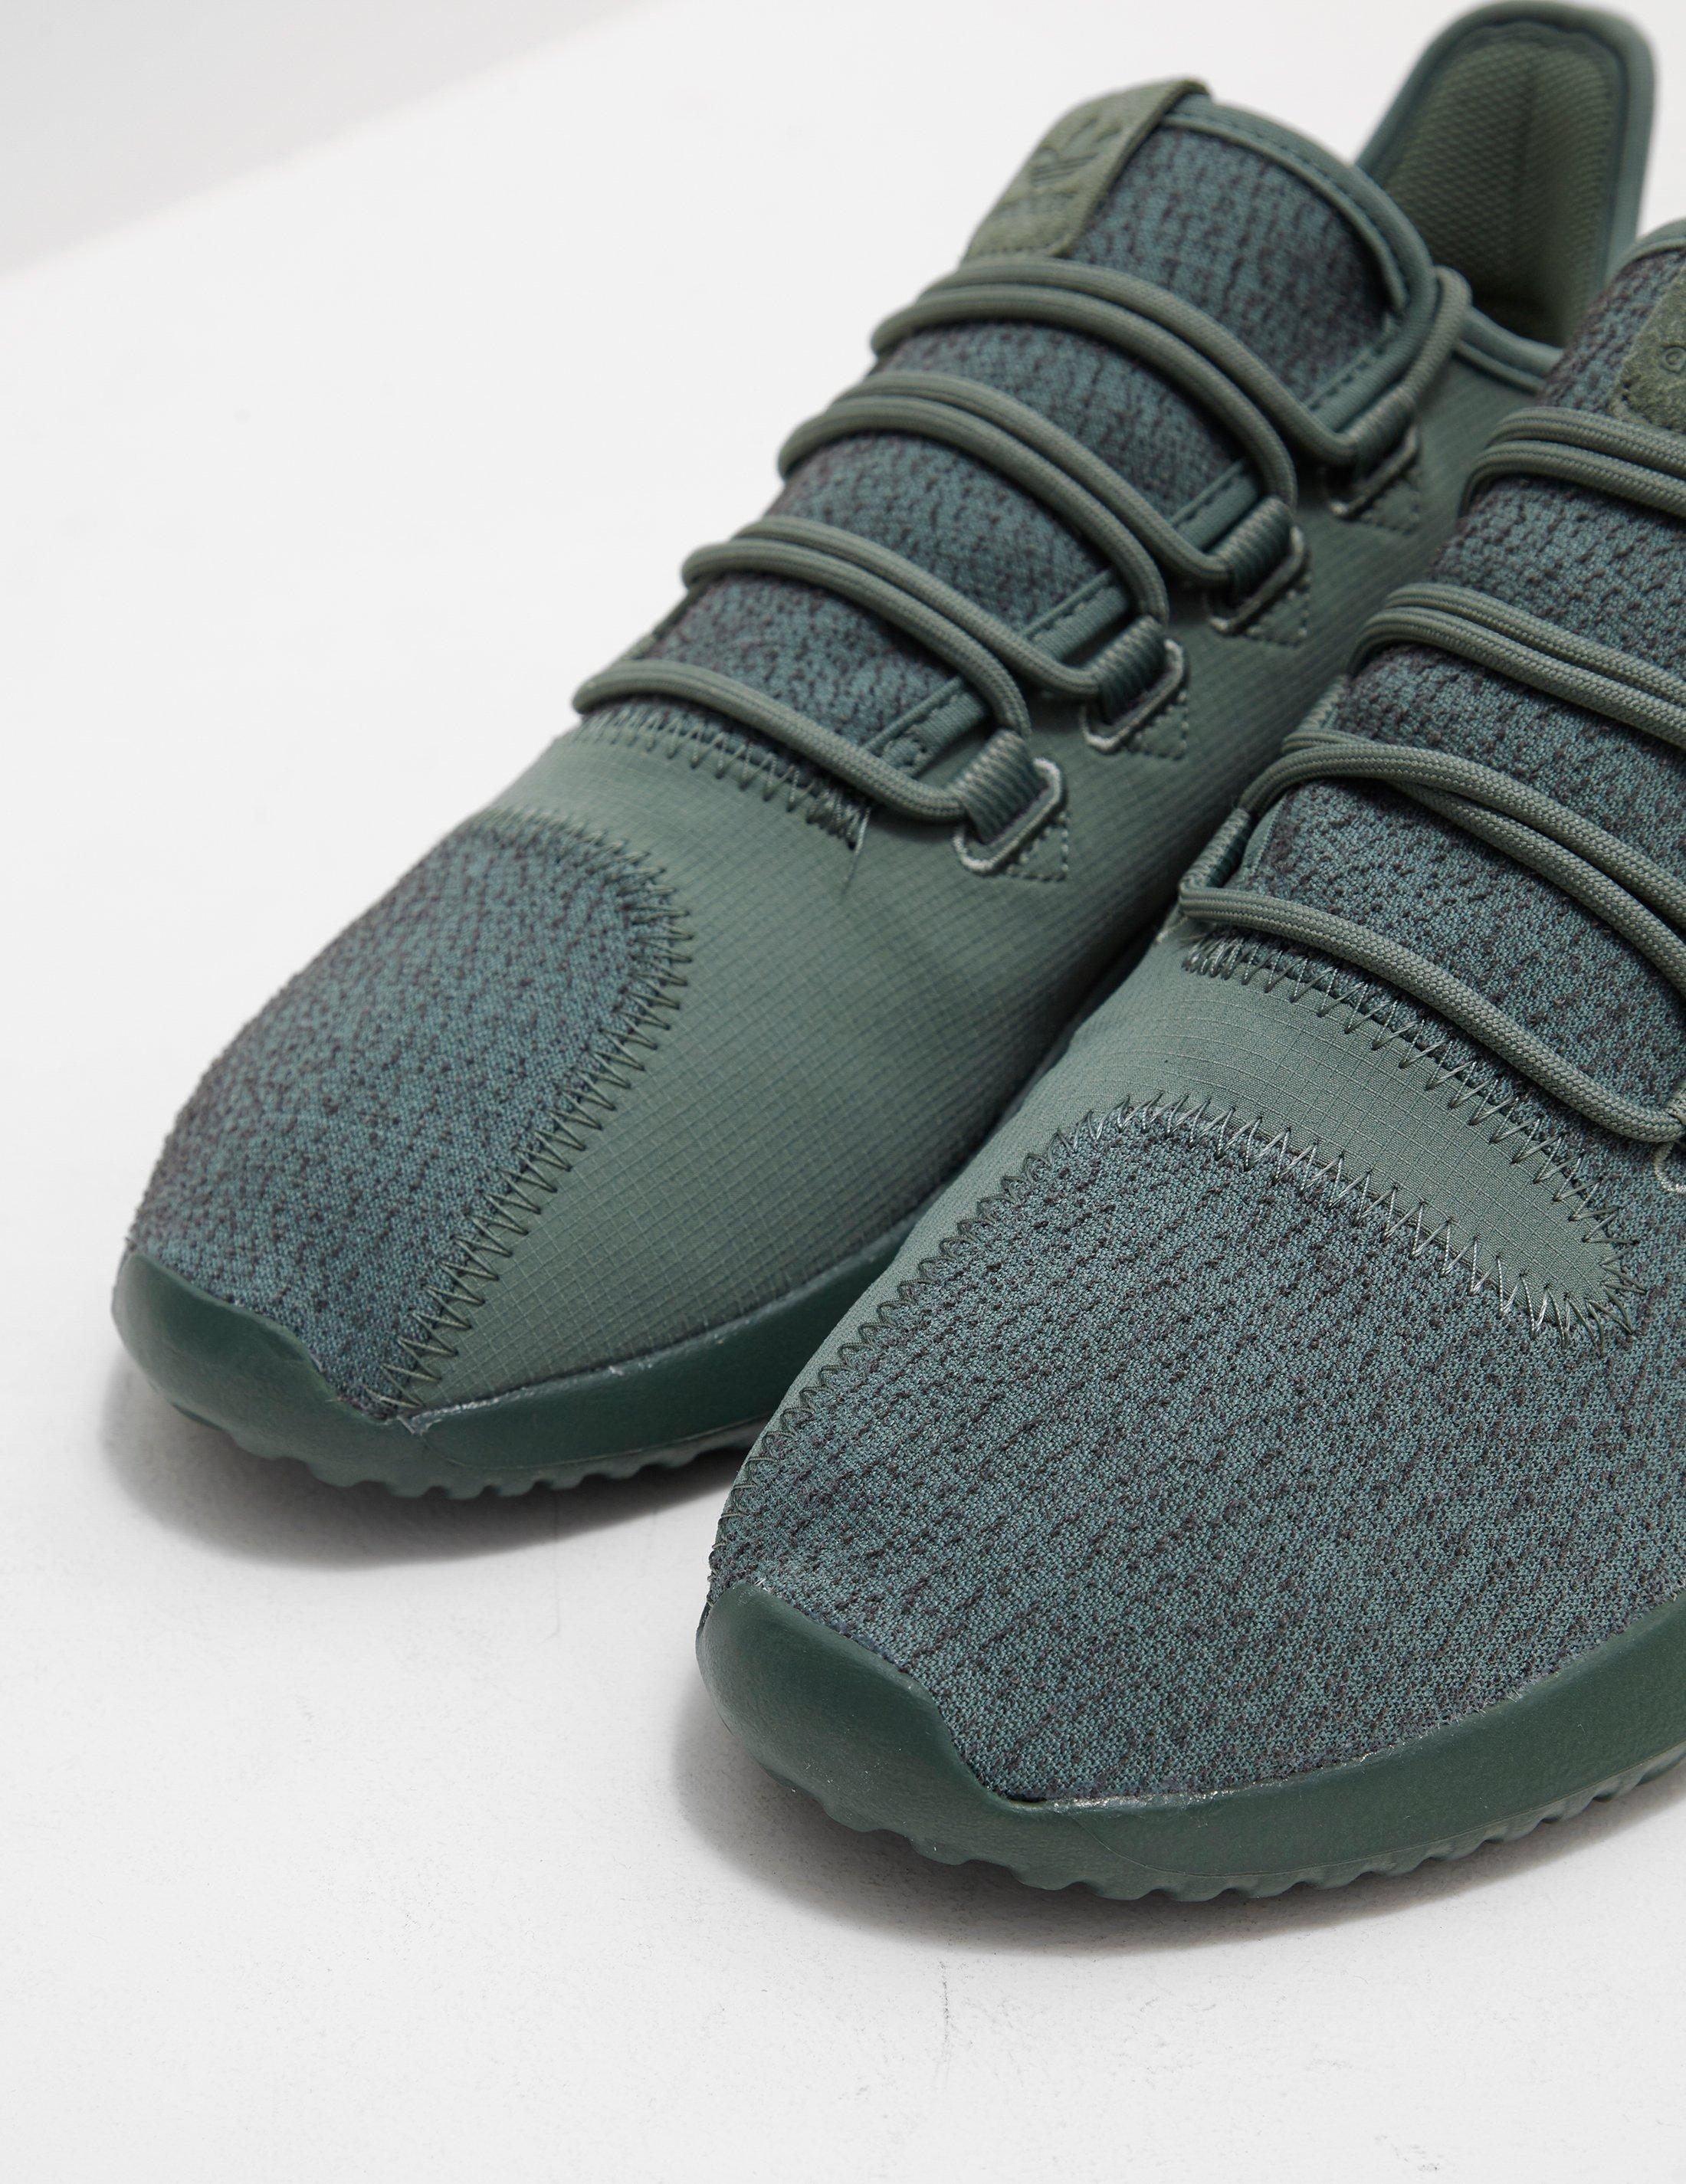 6e0a3264362c ... sweden lyst adidas originals mens tubular shadow green in green for men  save 18.644067796610173 f5235 392a2